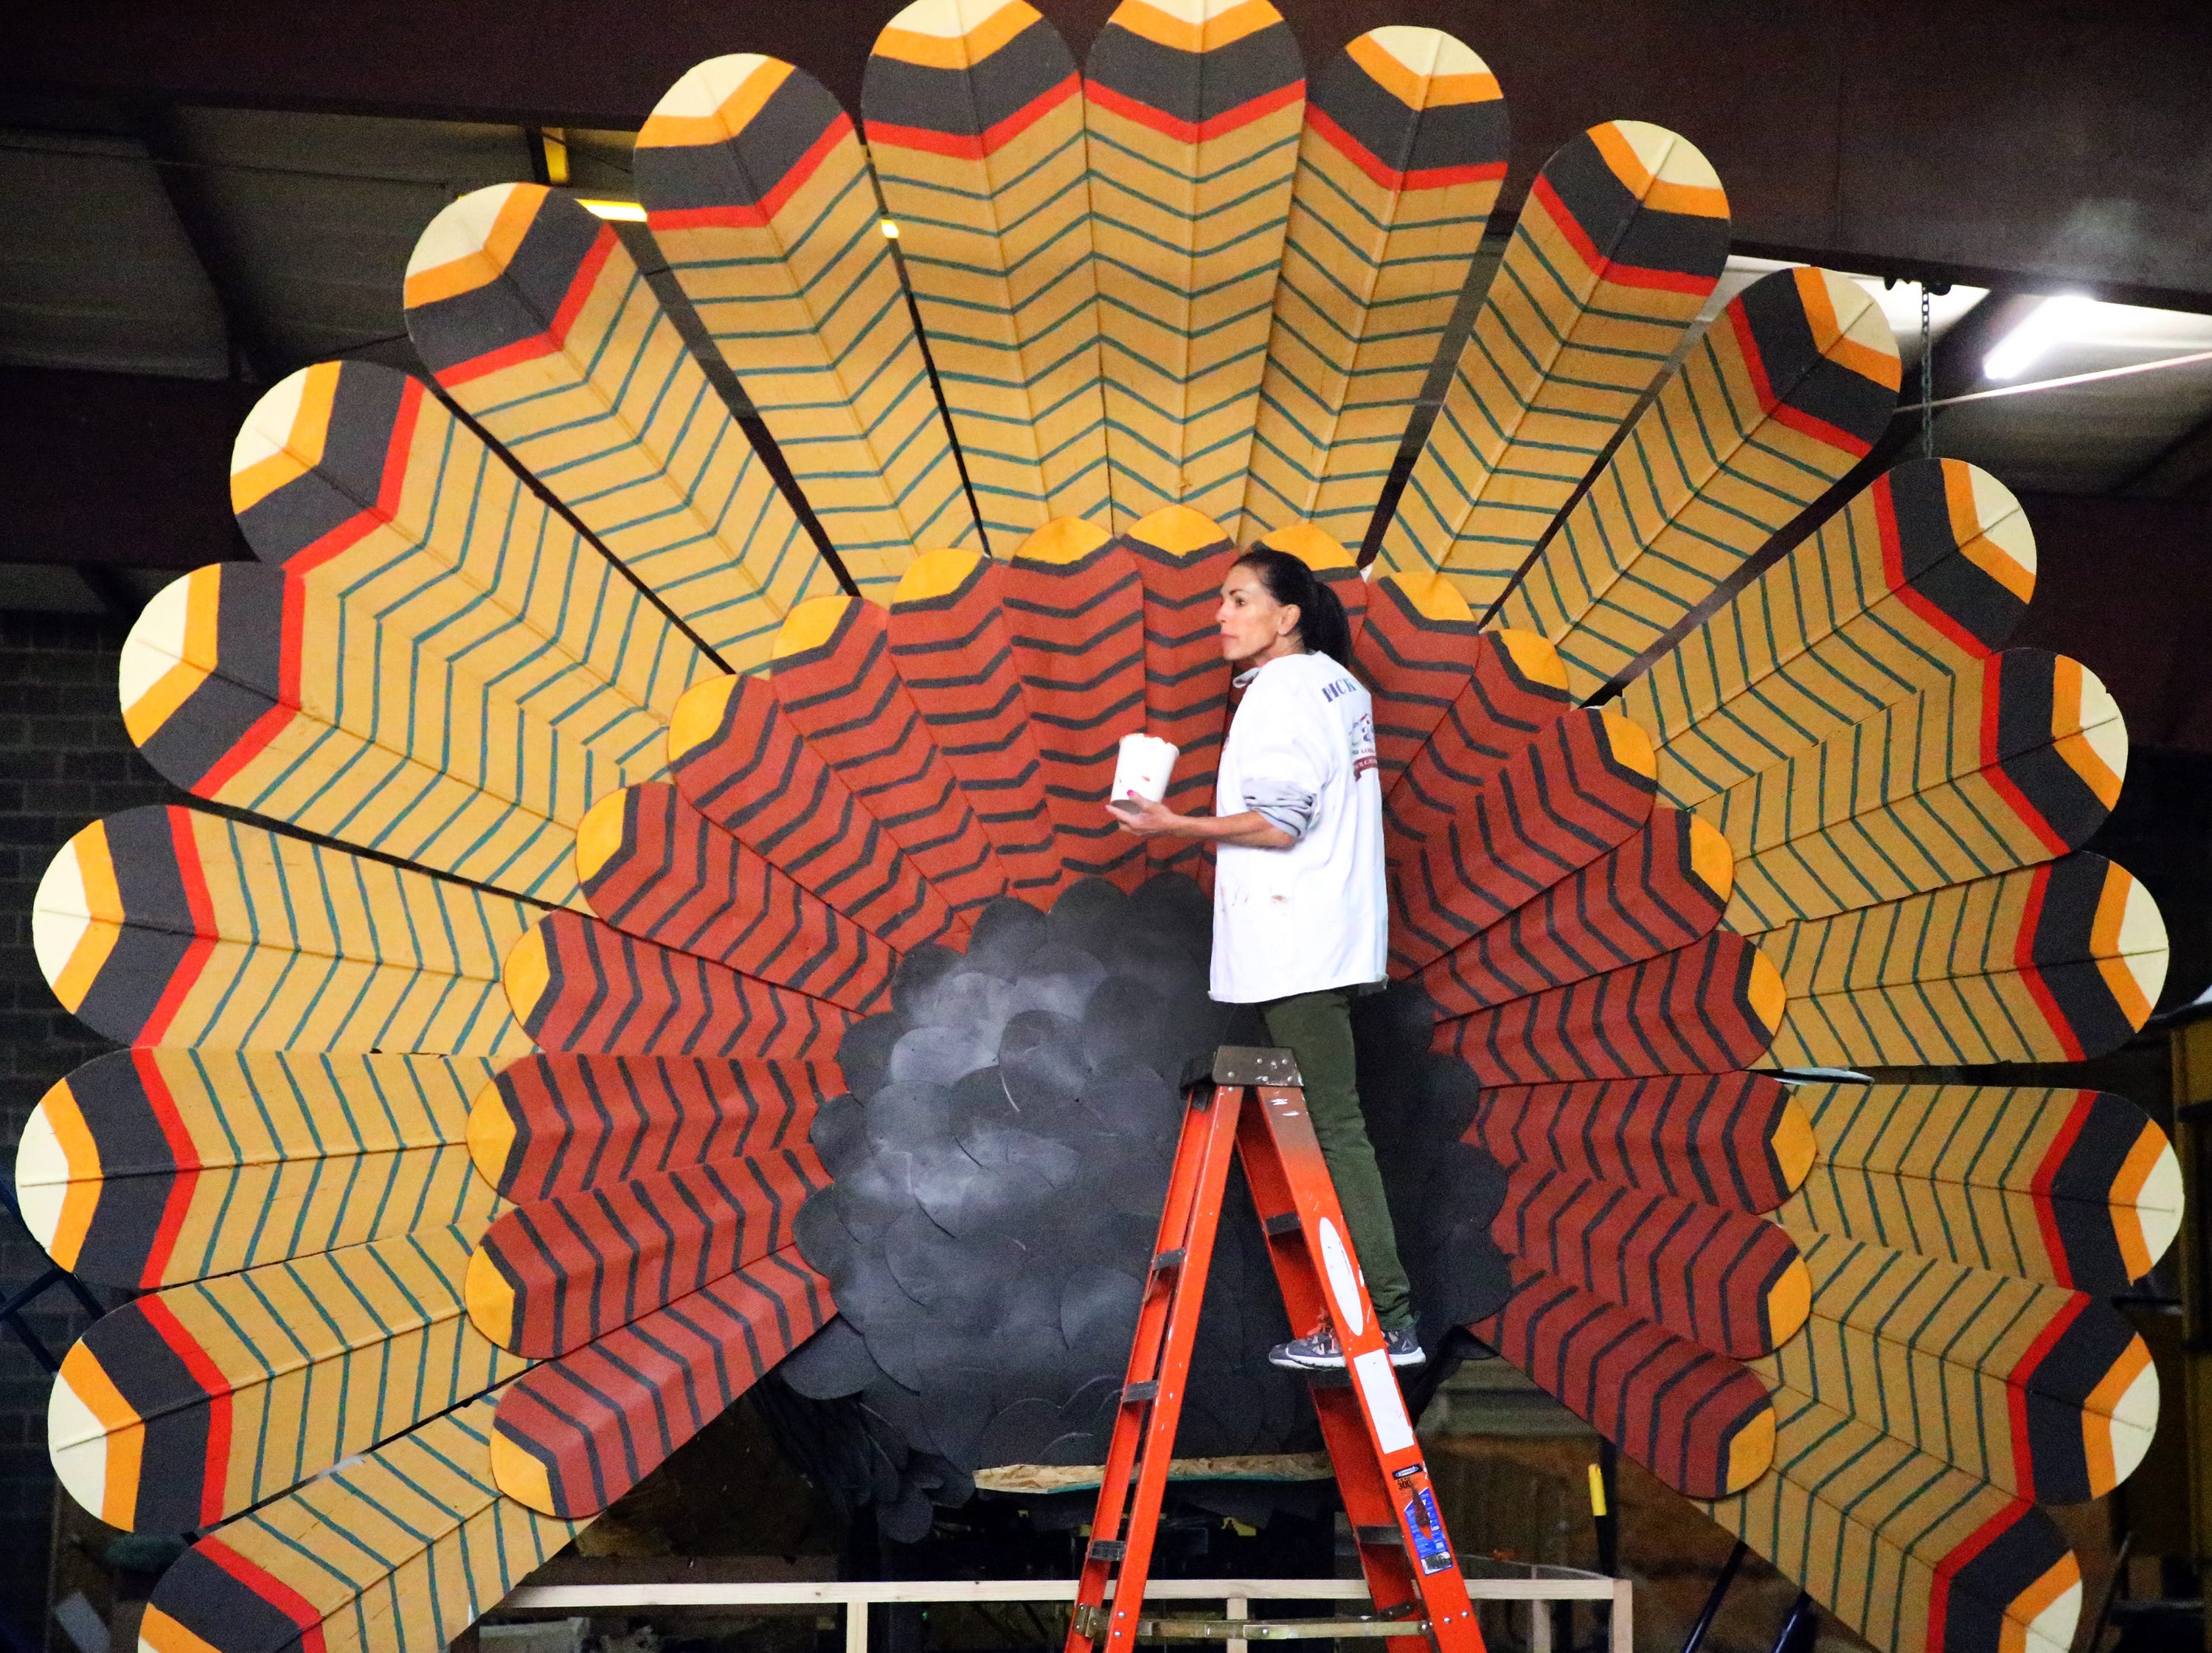 Robin Kobren, a parade float volunteer paints the back side of a giant turkey parade float for First Light Federal Credit Union, title sponsor of the 82bd annual Sun Bowl Parade inside a warehouse in East-Central El Paso Monday.